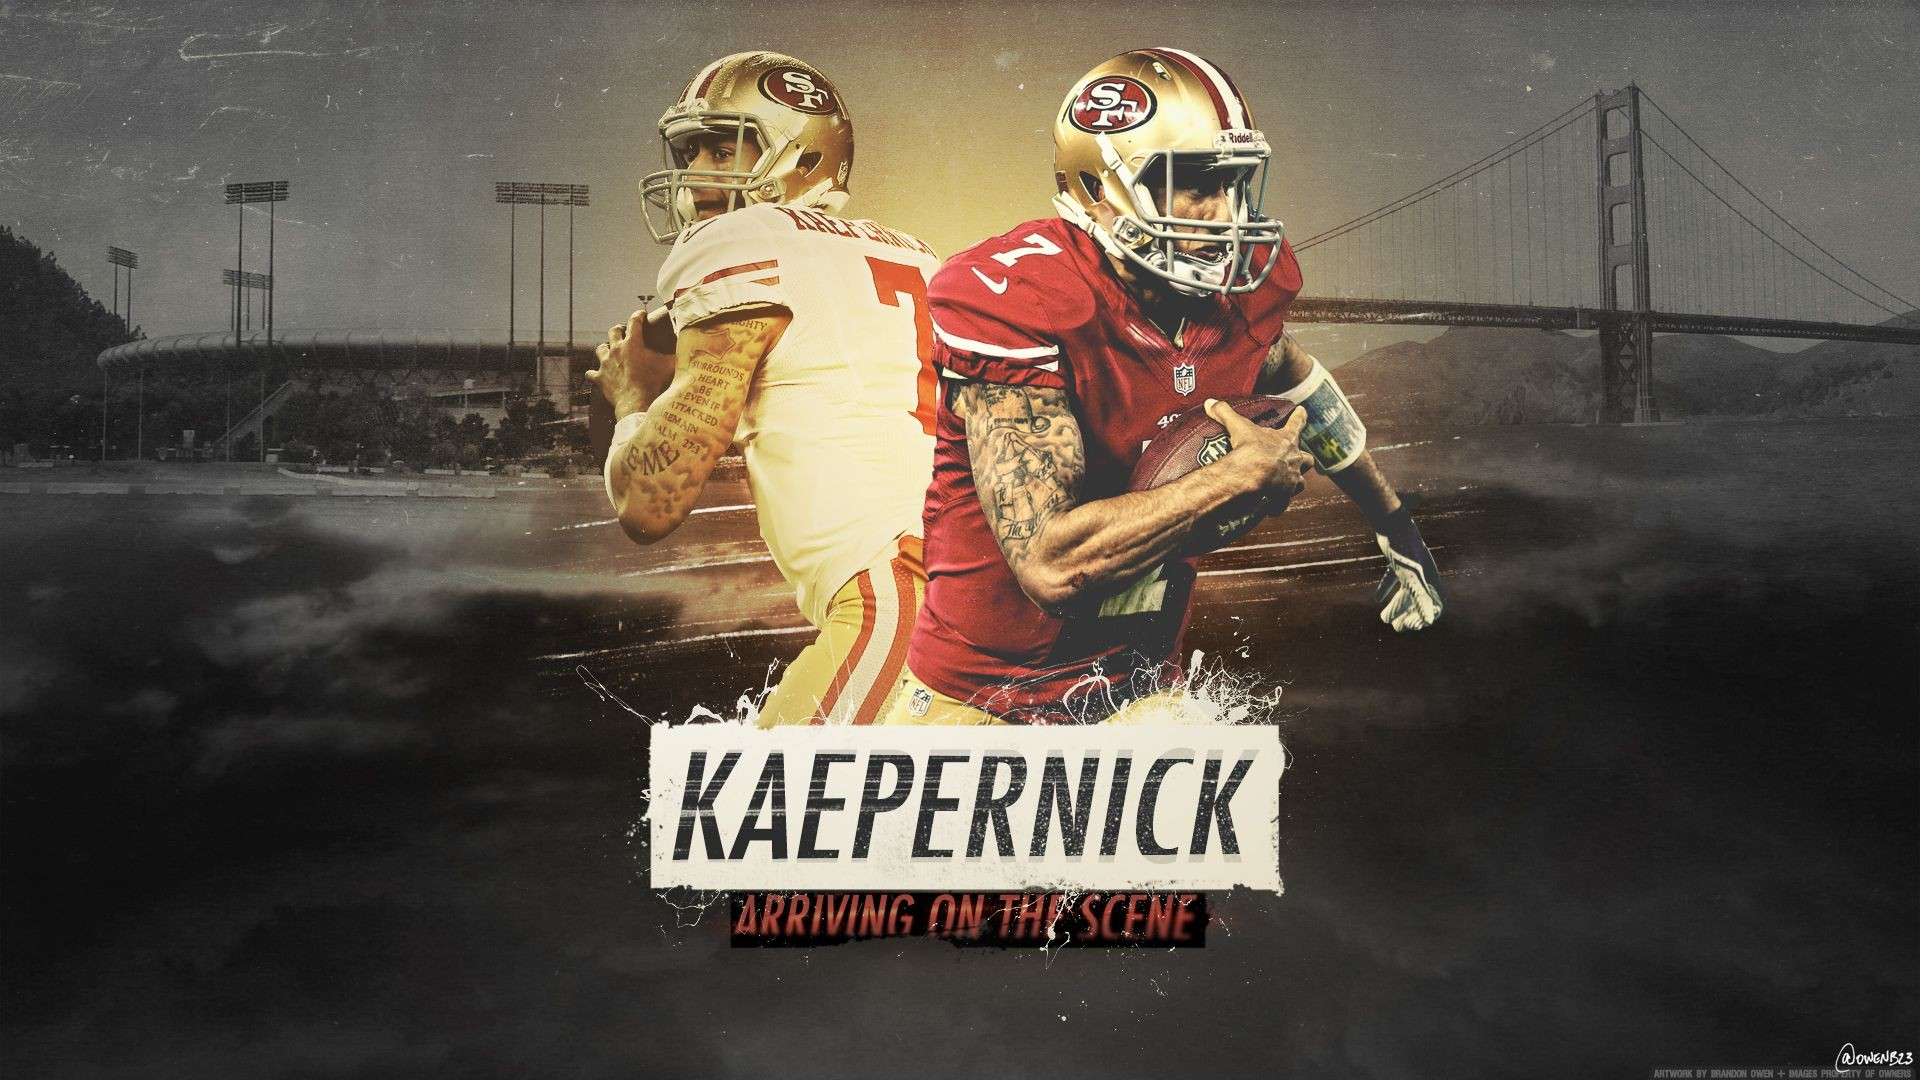 2440x1952 49ers player hd wallpapers desktop wallpapers high definition cool background photos windows apple display picture 2440×1952 Wallpaper HD